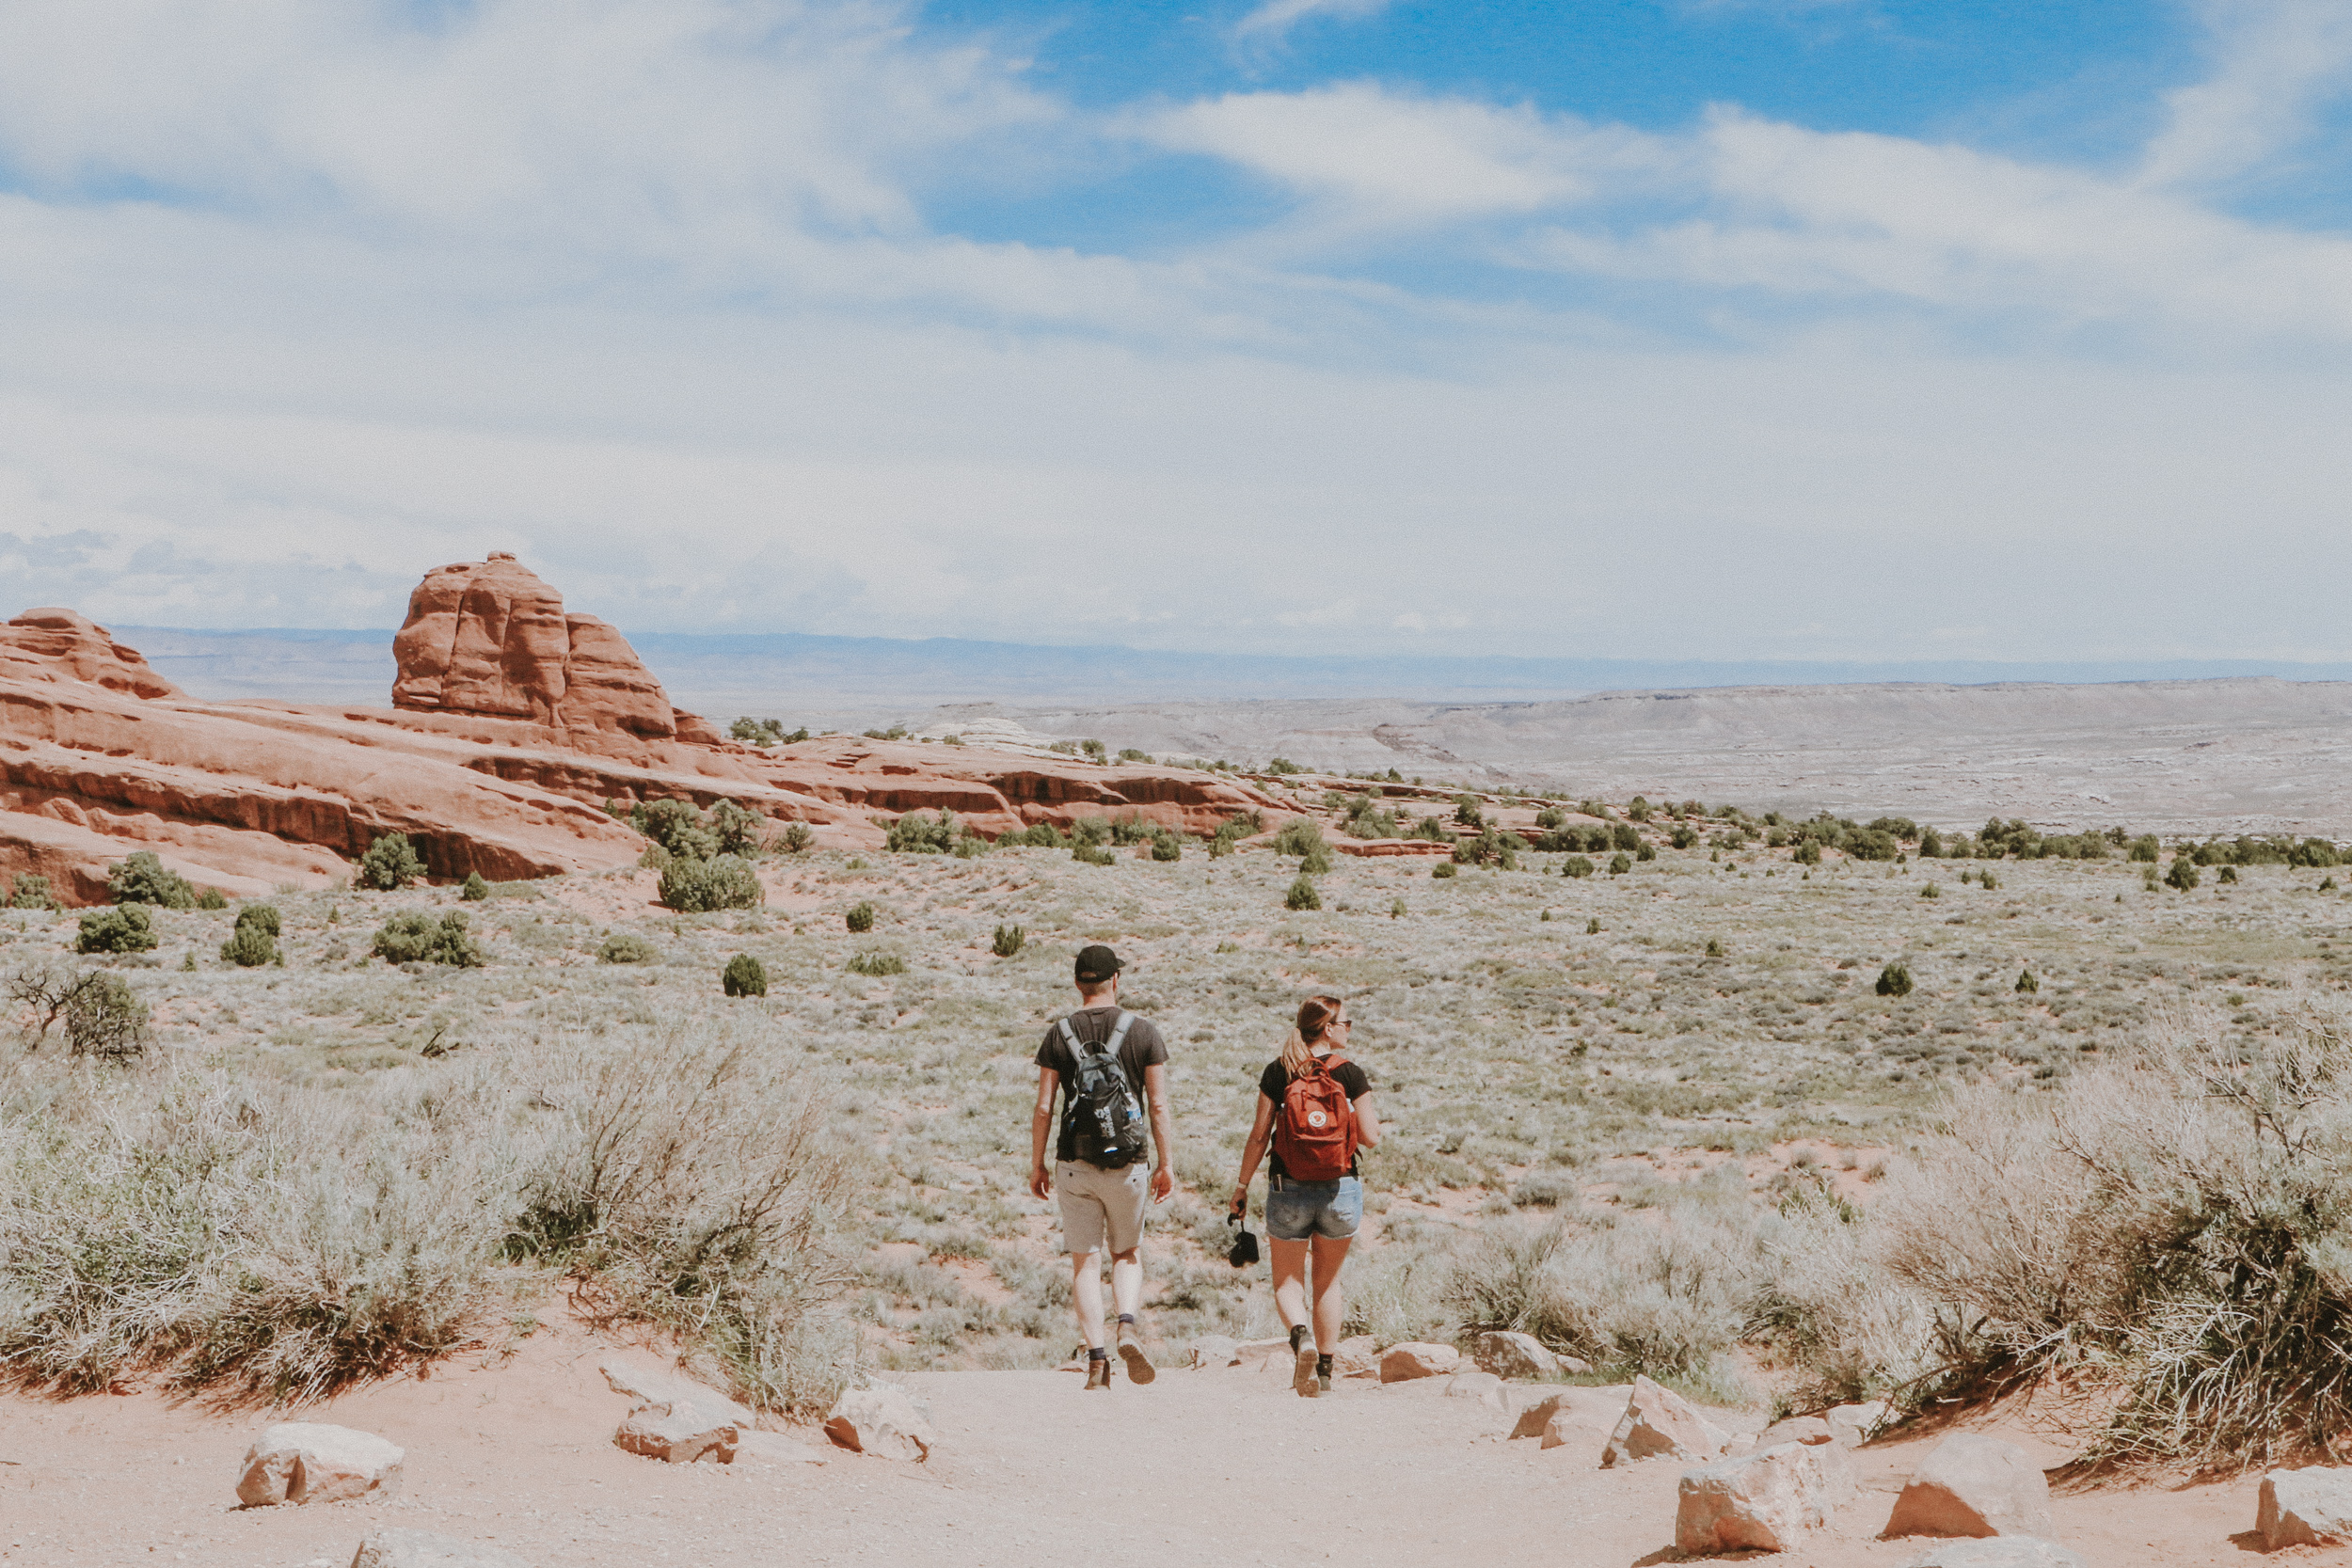 hello adventure co - utah and arizona national parks roadtrip from PNW-2989.jpg